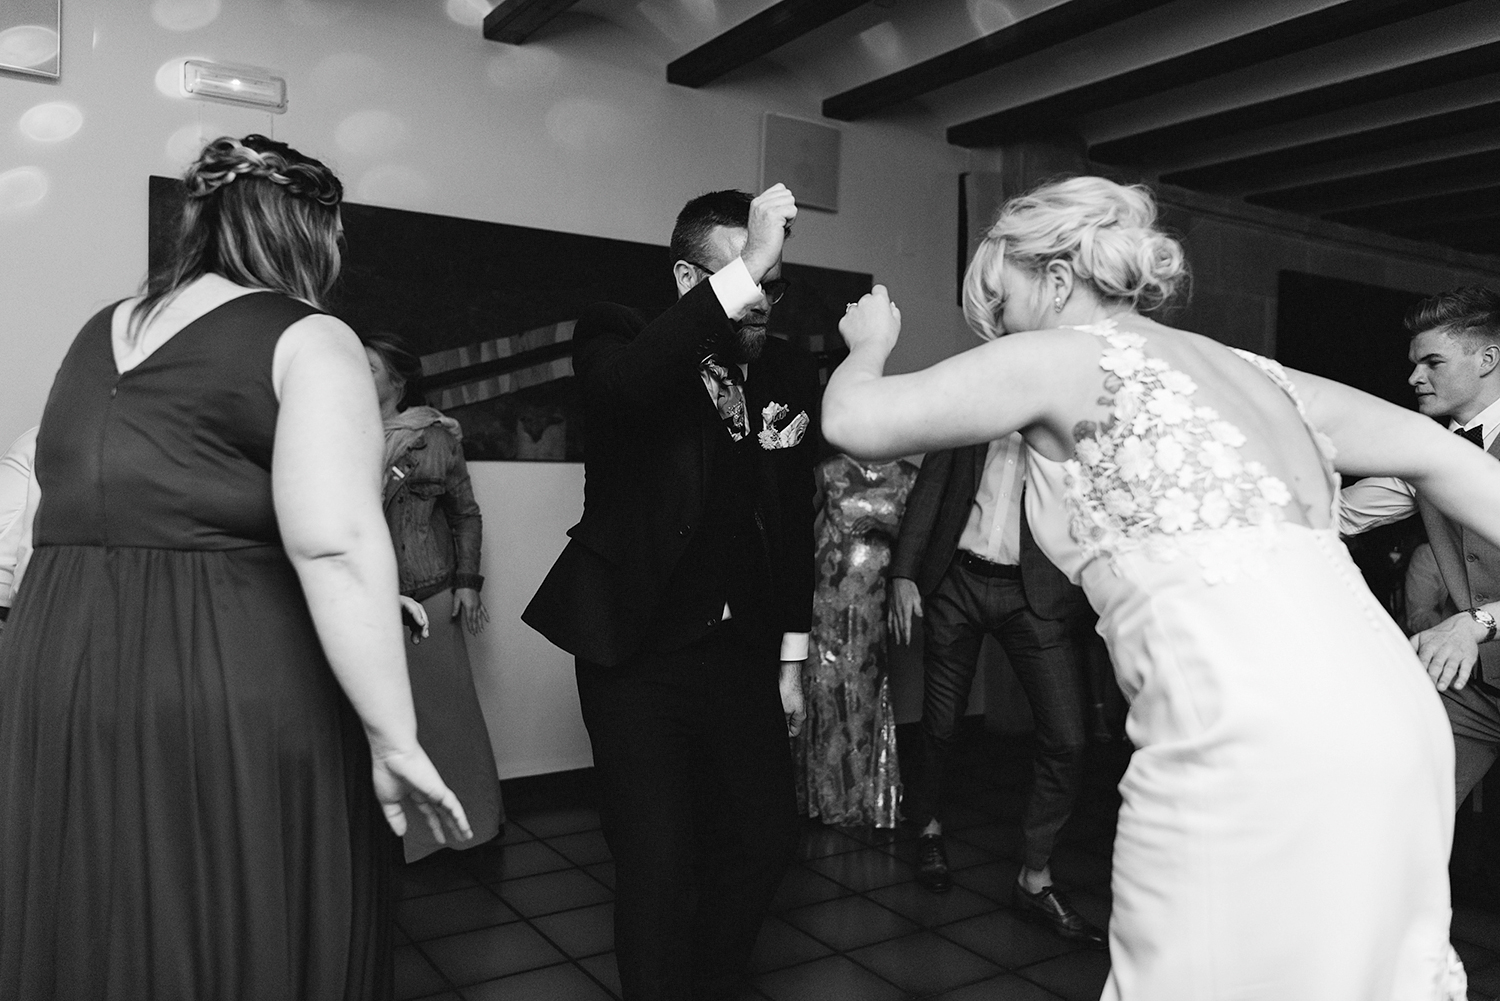 destination-wedding-photographer-from-toronto-ryanne-hollies-photography-documentary-editorial-style-toronto-wedding-photographer-junebug-weddings-reception-bride-and-groom-first-dance-goofy-candid-moments-hilarious.jpg